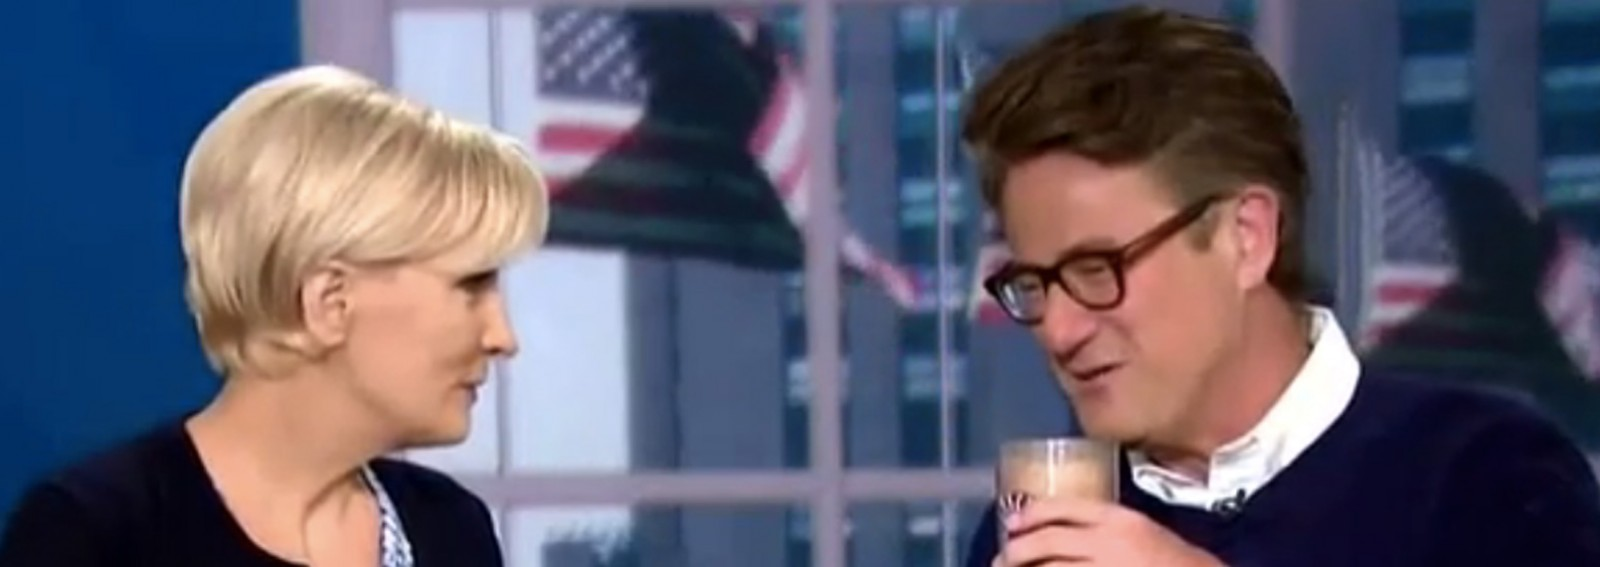 Rumors are swirling about budding romance between 'Morning Joe' co-hosts